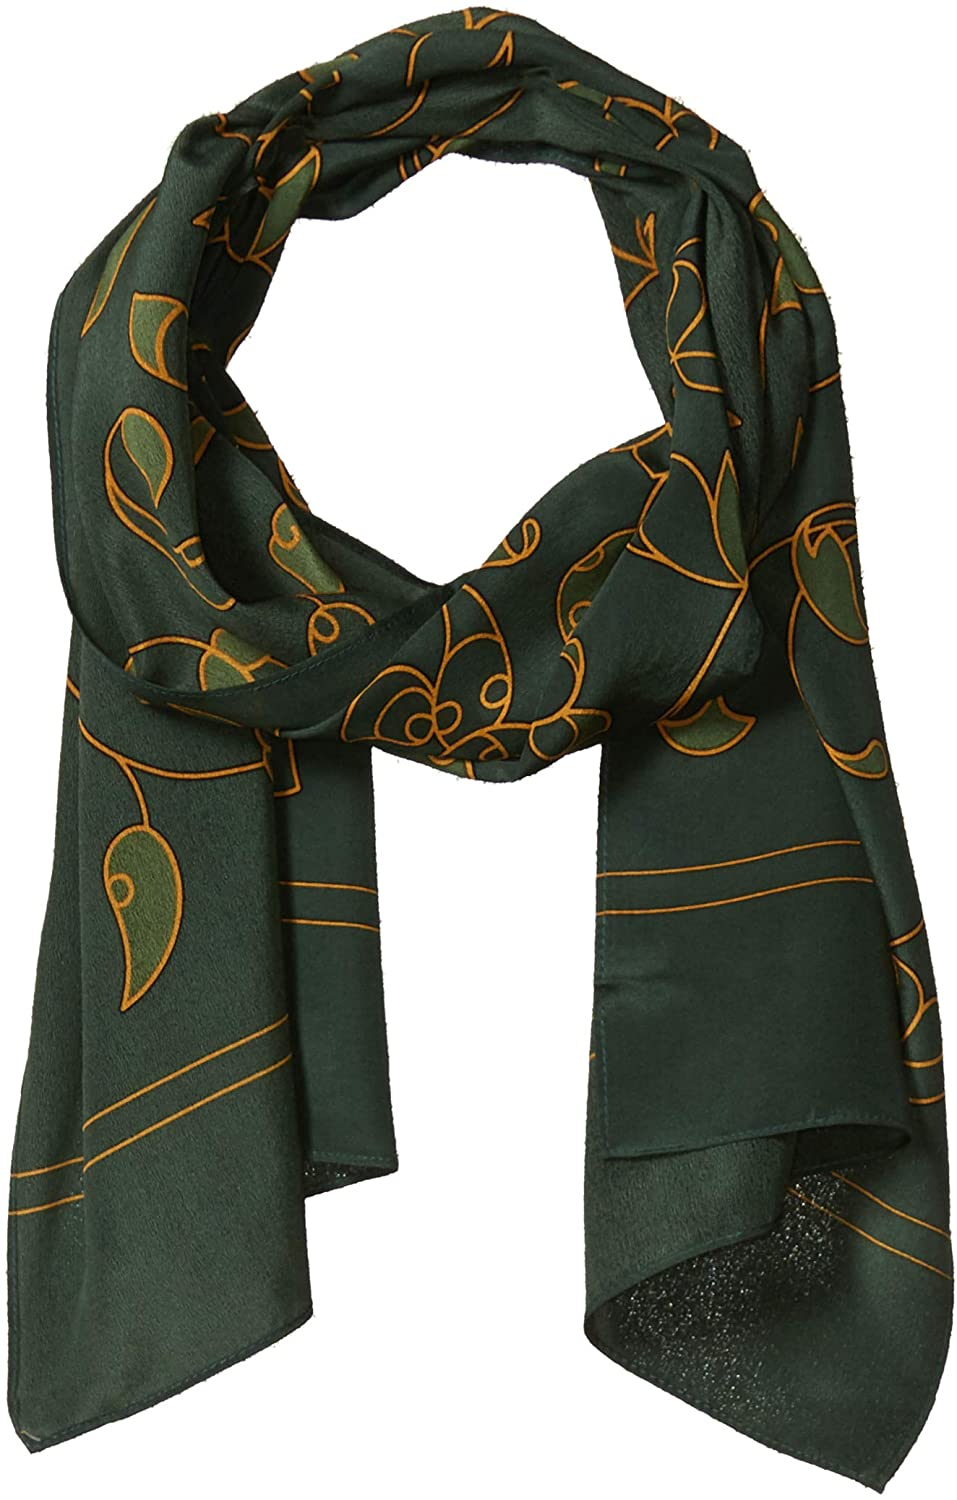 100% Silk Green Scarf. Premium Quality. Luxurious, Elegant, Understated. Perfect as upscale Christmas Holiday Gift/Present. St. / Saint Patricks/Patricks Day scarves. Scarfs for Self or as Gifts